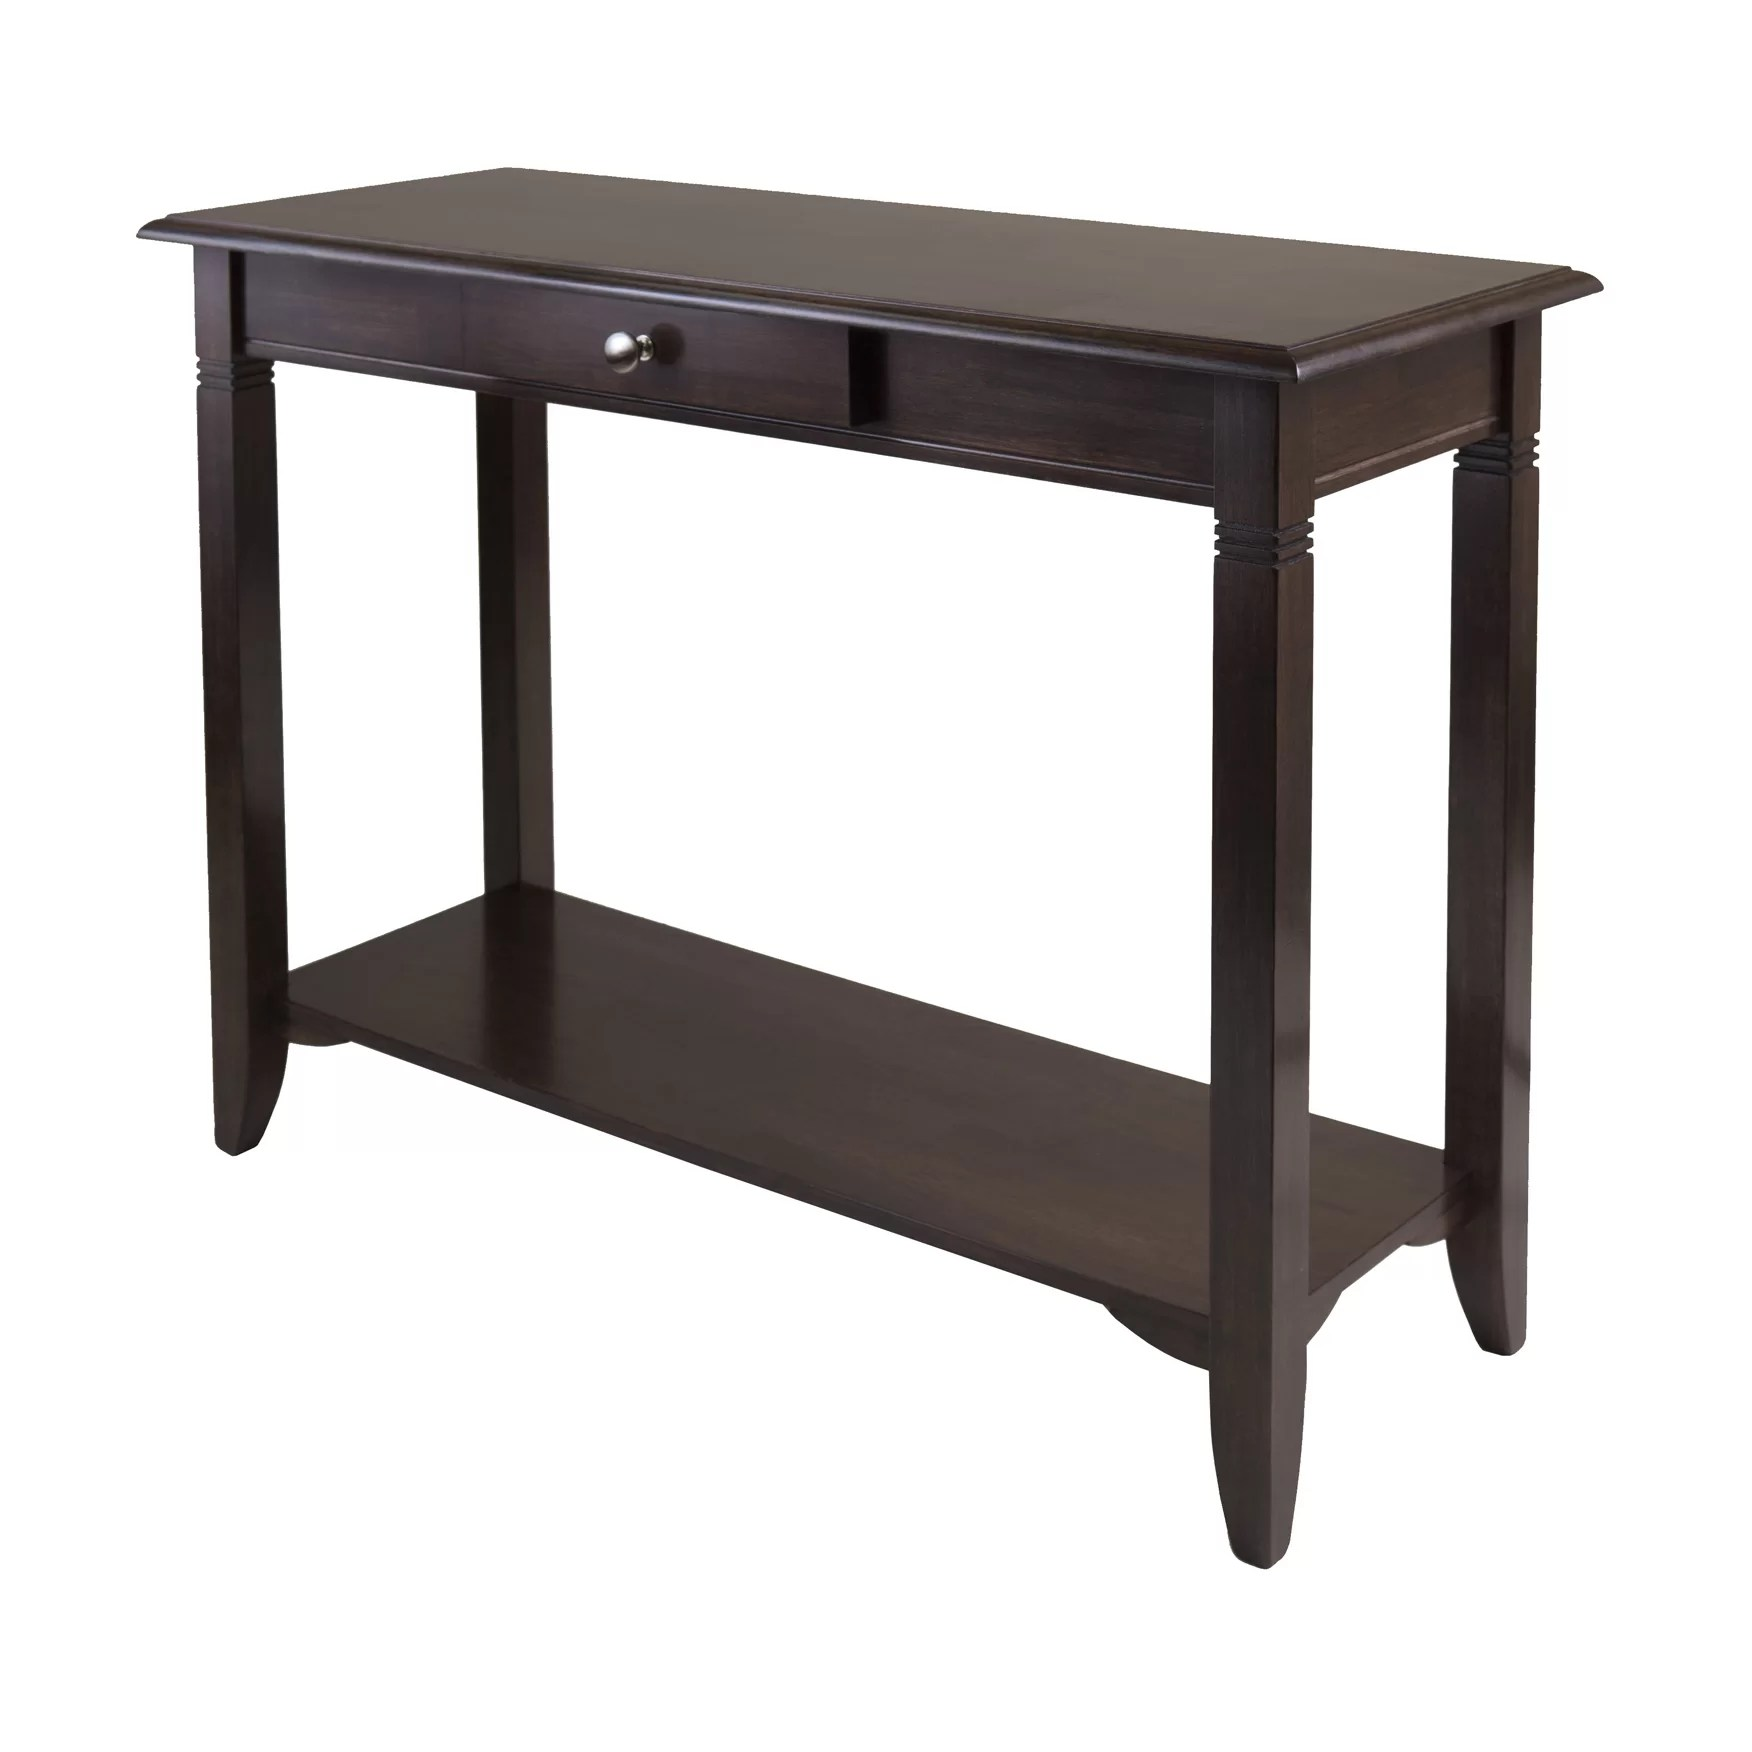 wayfair furniture sofa tables dye faux leather charlton home beckwood console table and reviews